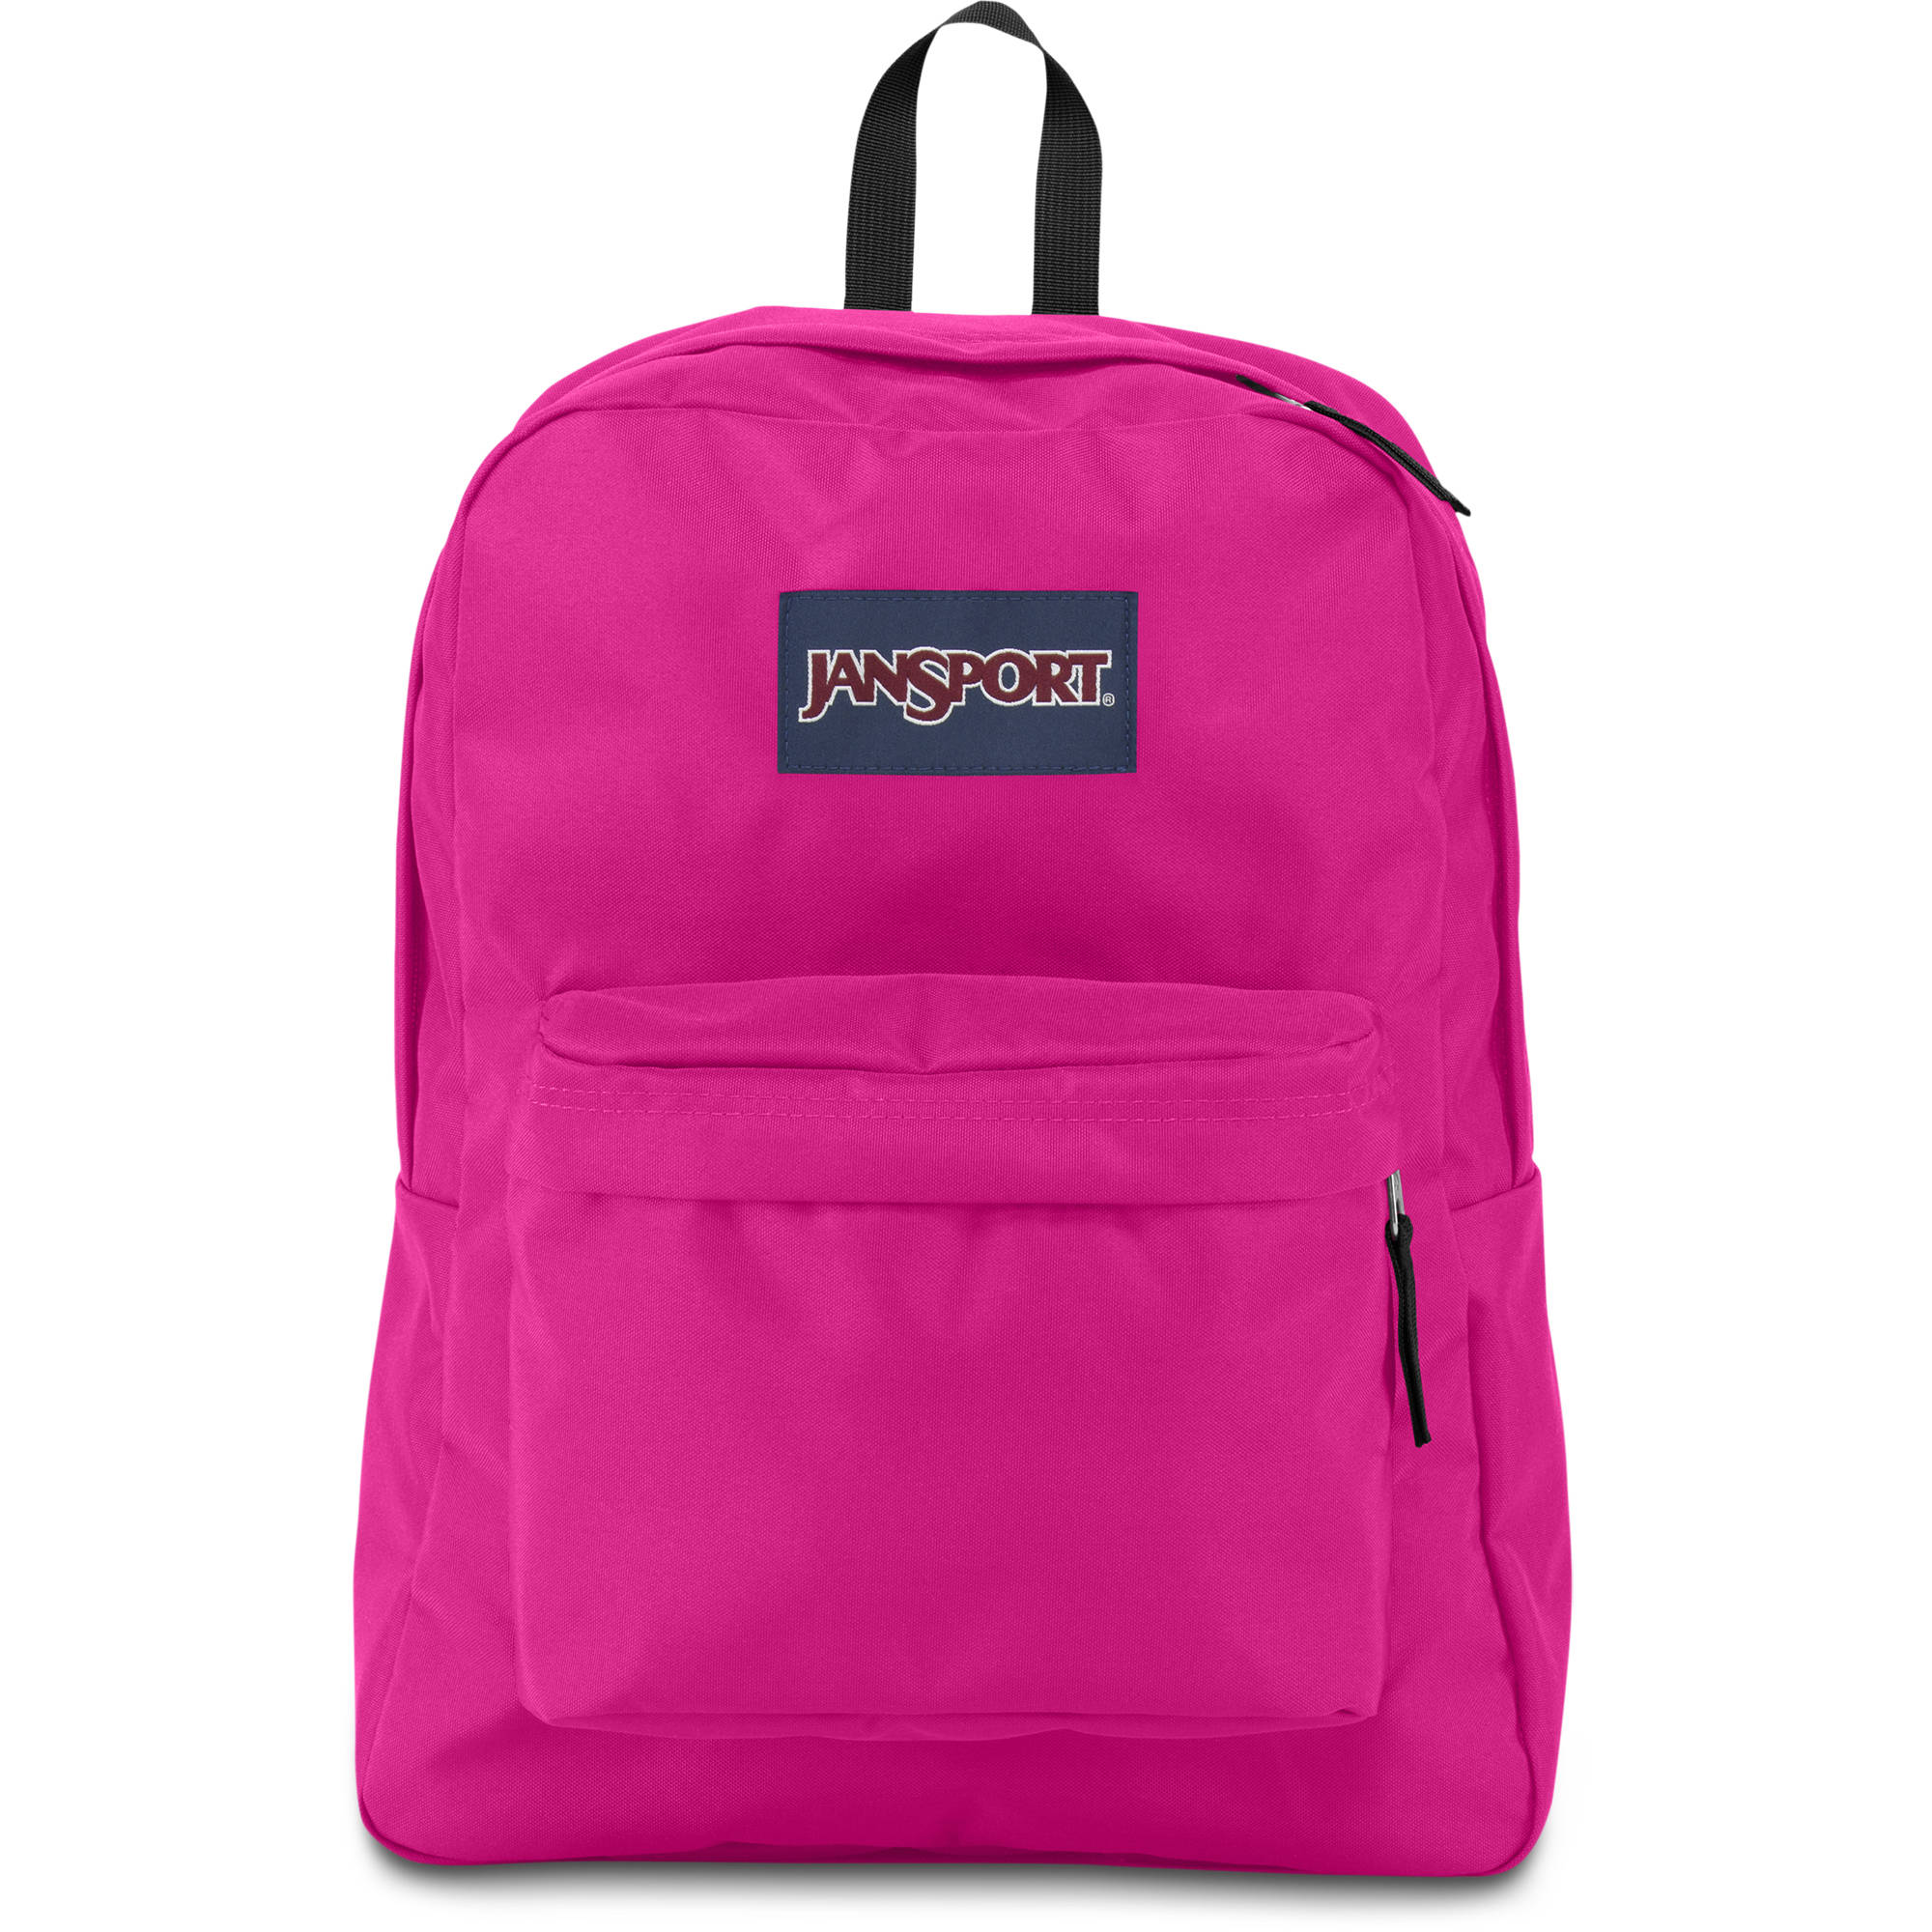 Where Can I Buy Jansport Backpacks 0U3vYrLR